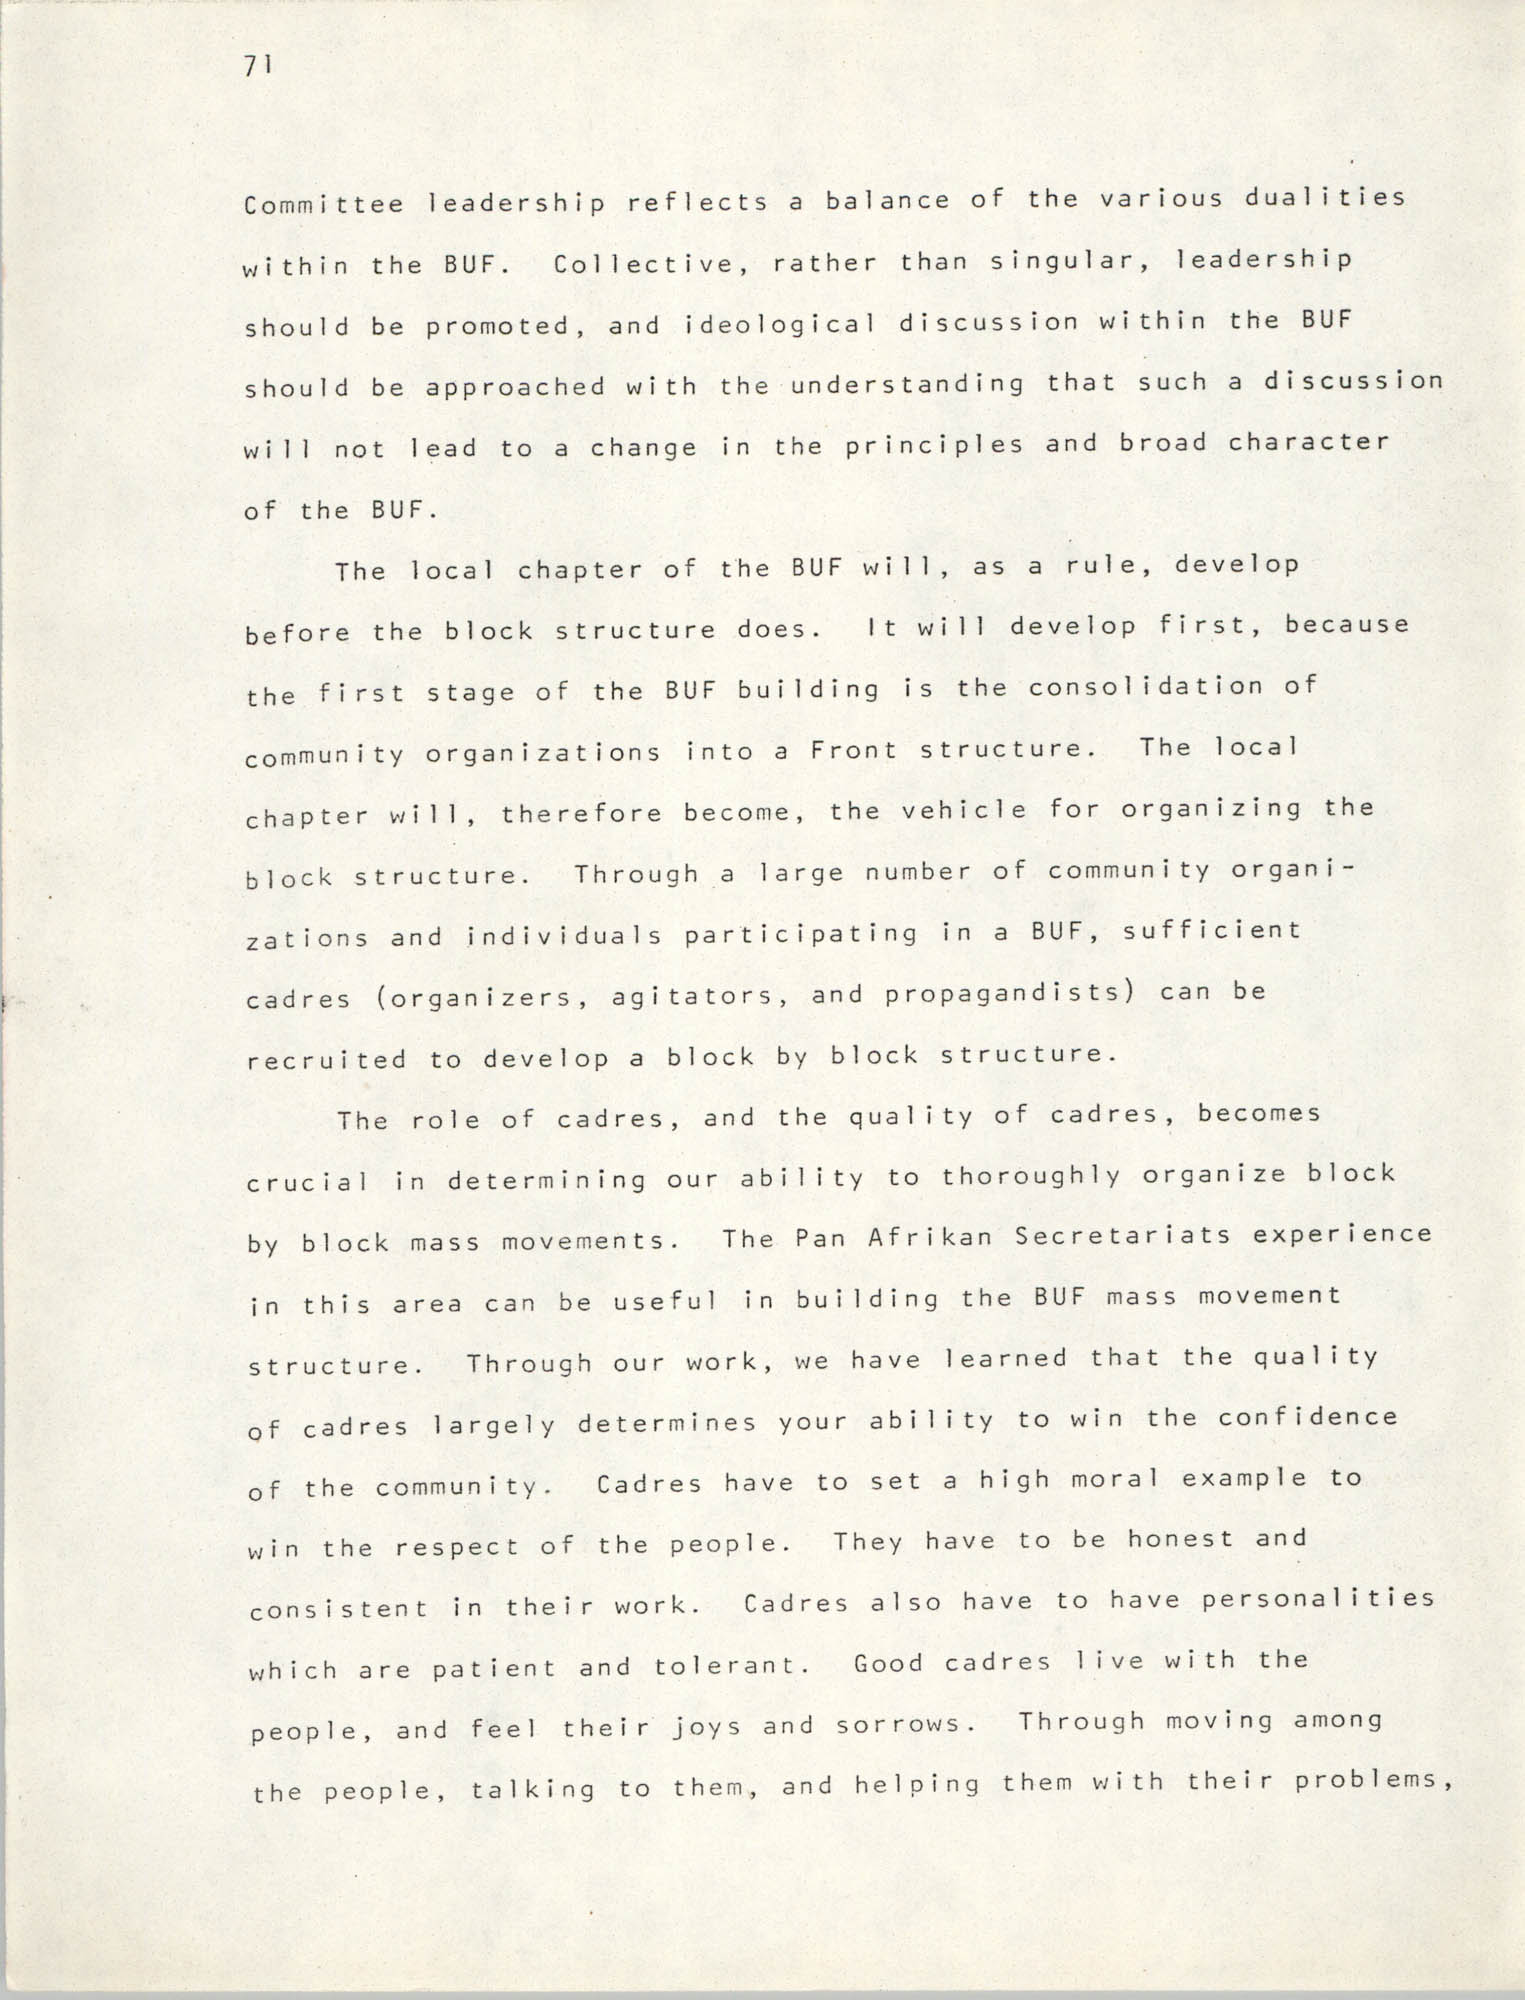 Pan-African Committee of the Black United Front, Page 71